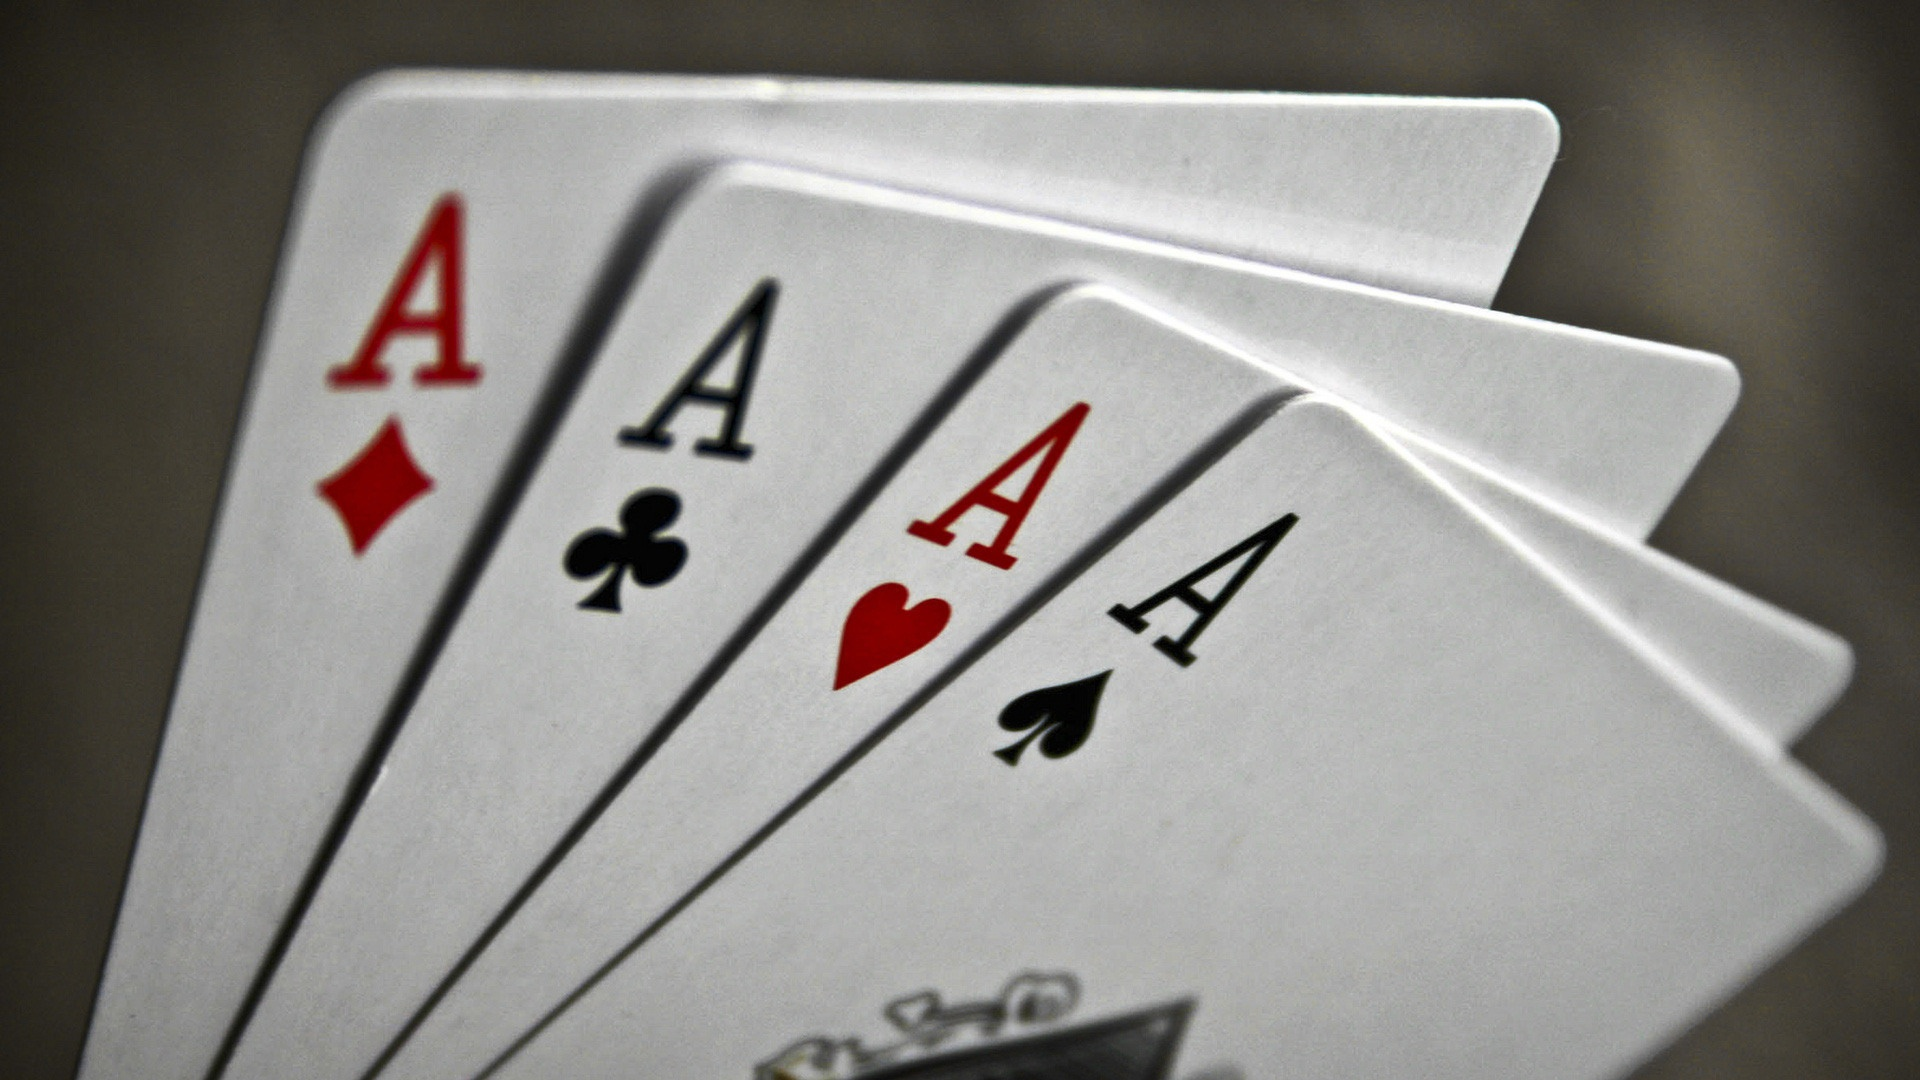 4 aces in poker means of grace